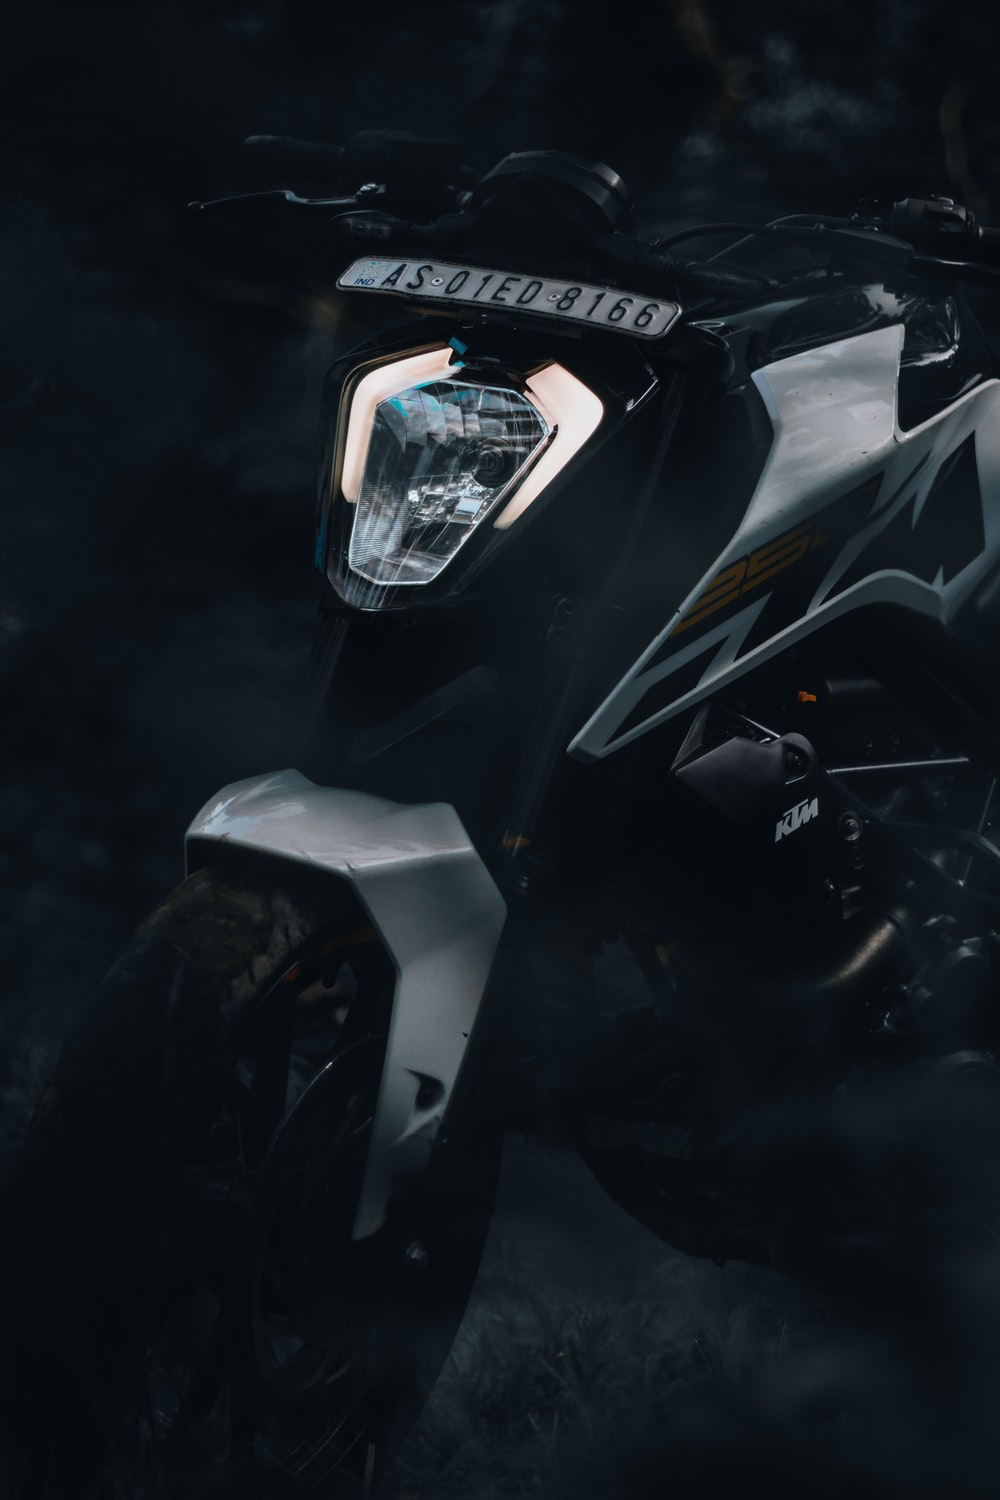 black and gray motorcycle with black and white helmet